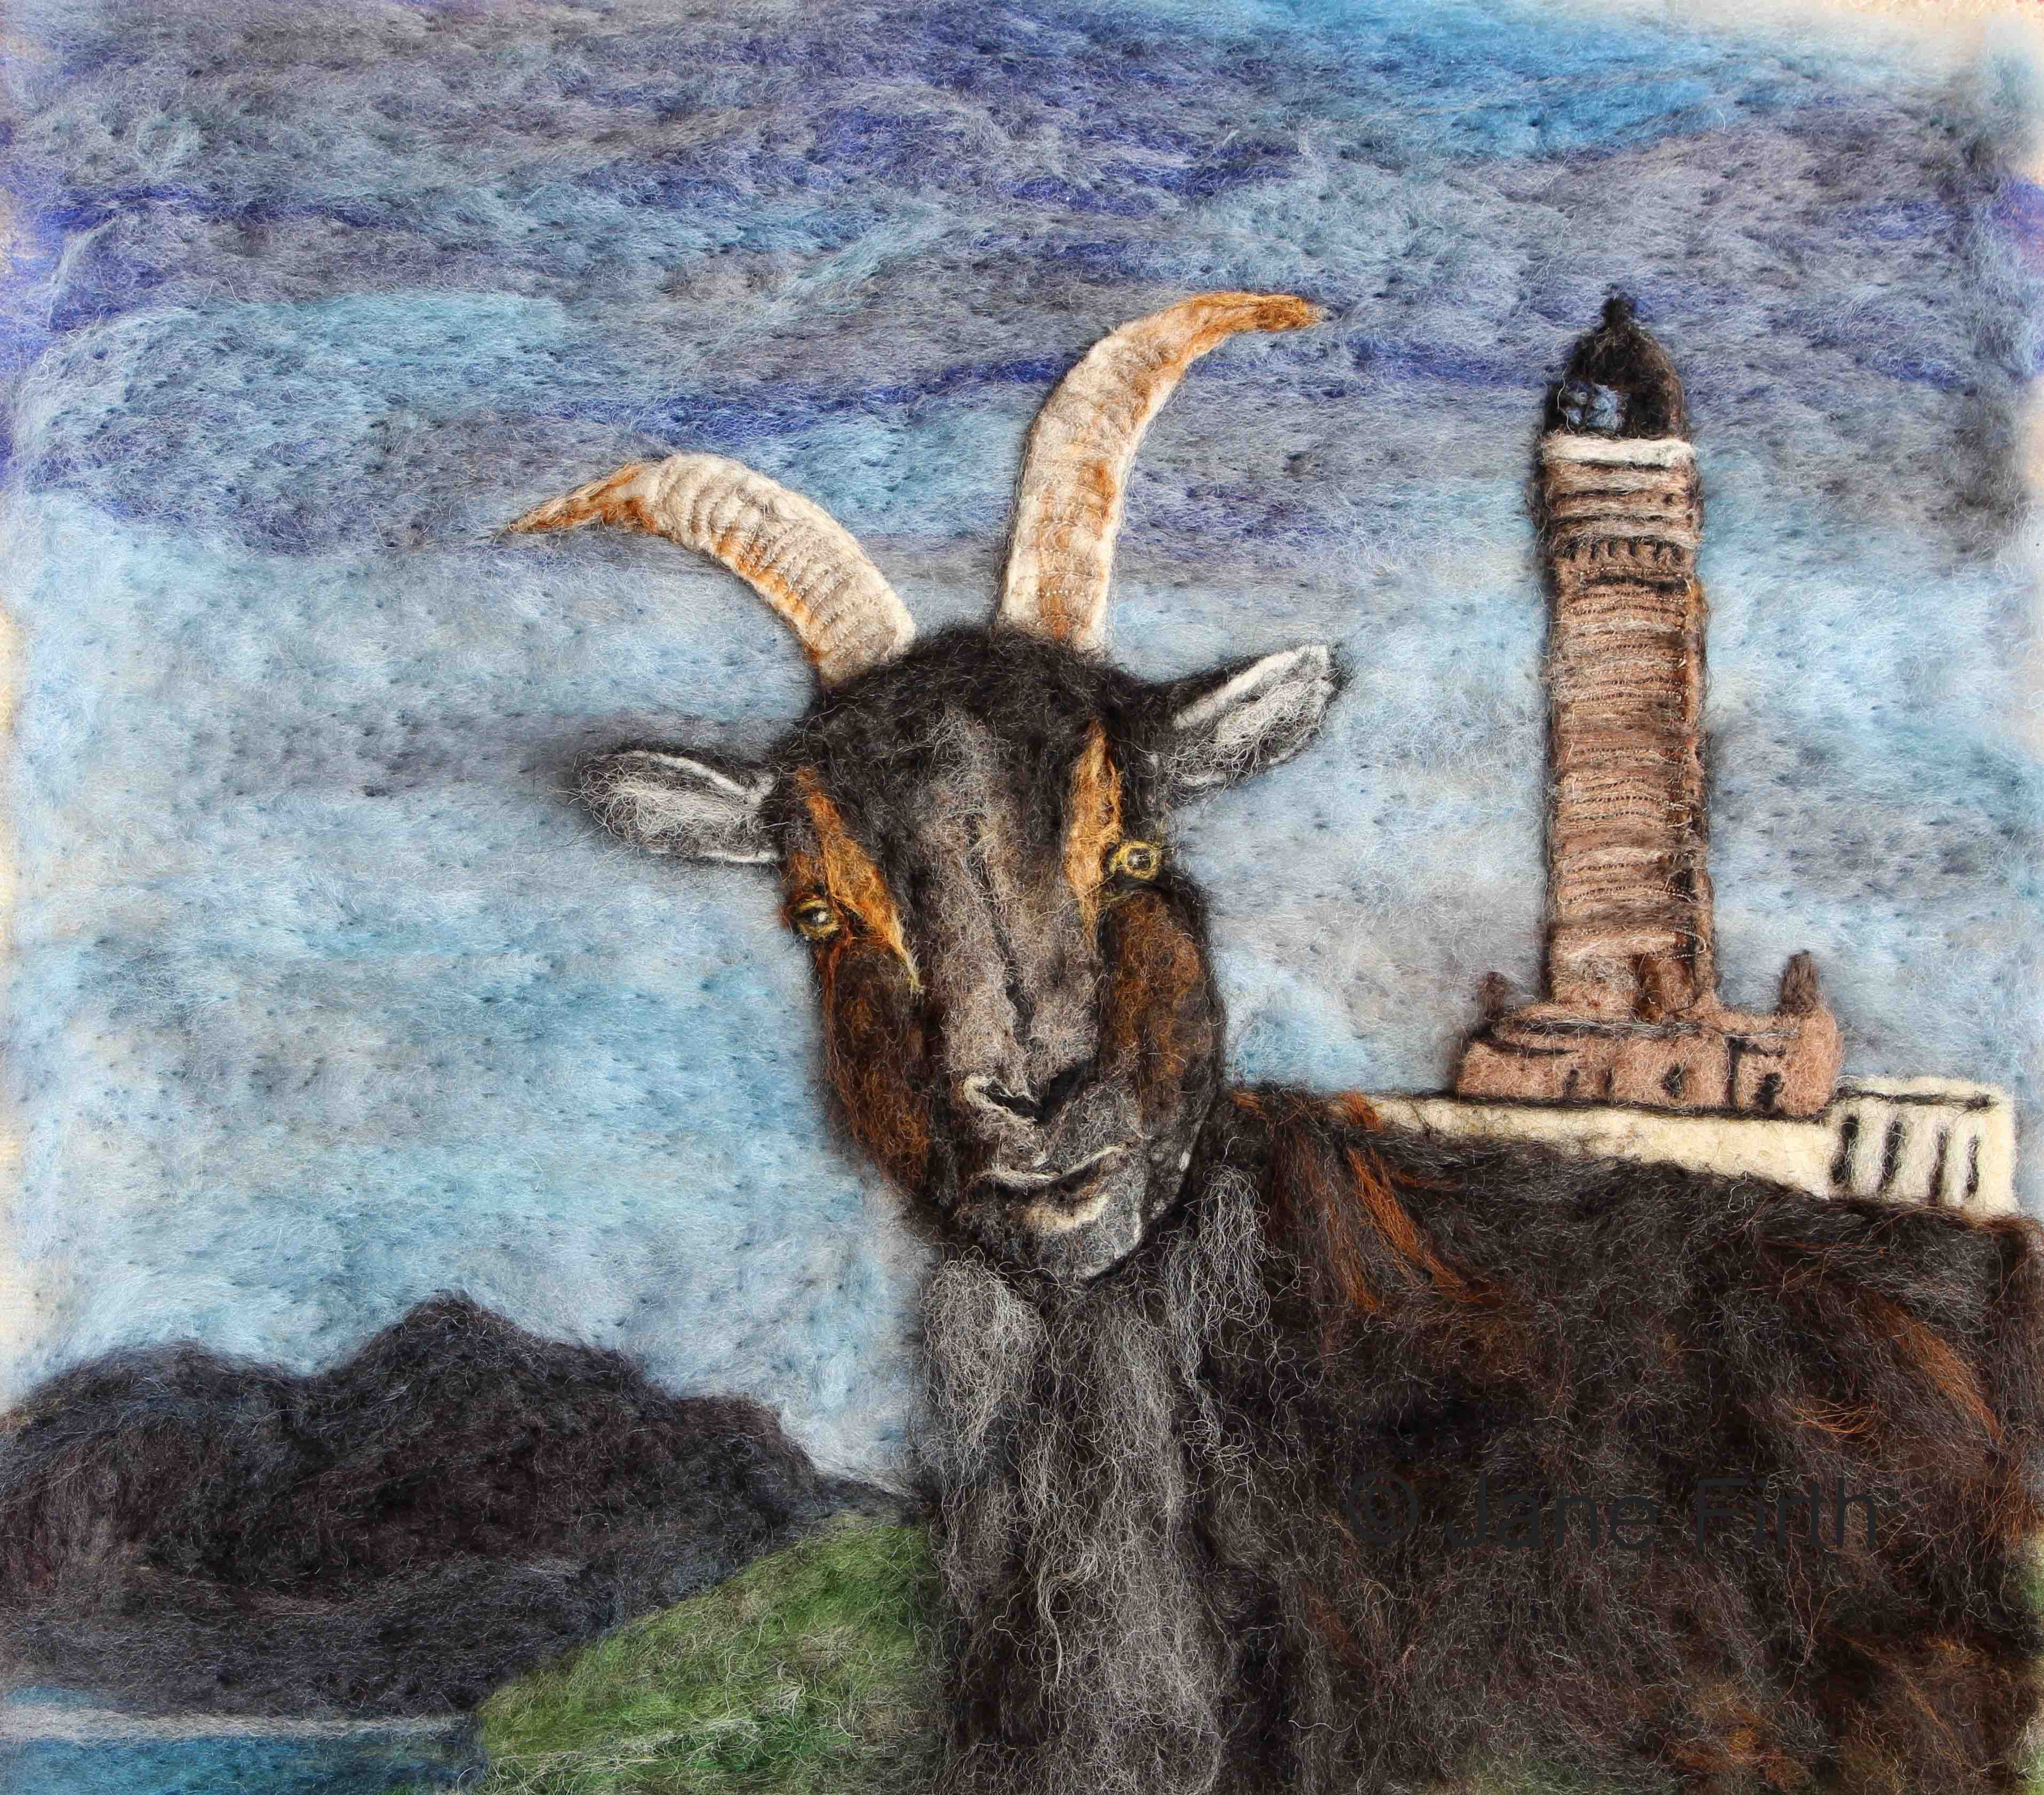 Goat and lighthouse